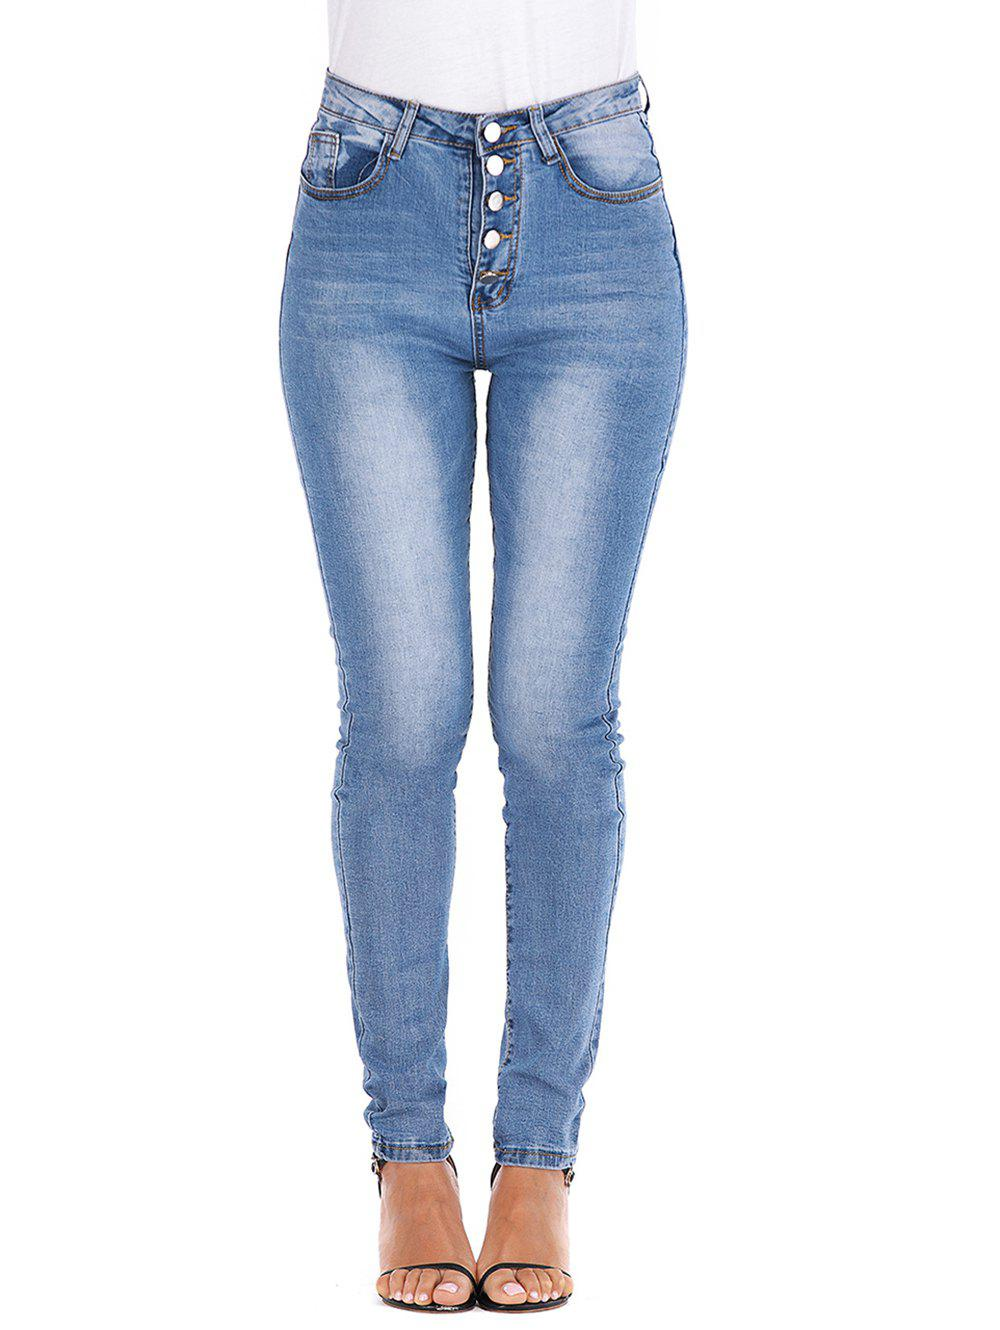 High Waisted Button Fly Skinny Jeans - DENIM BLUE M